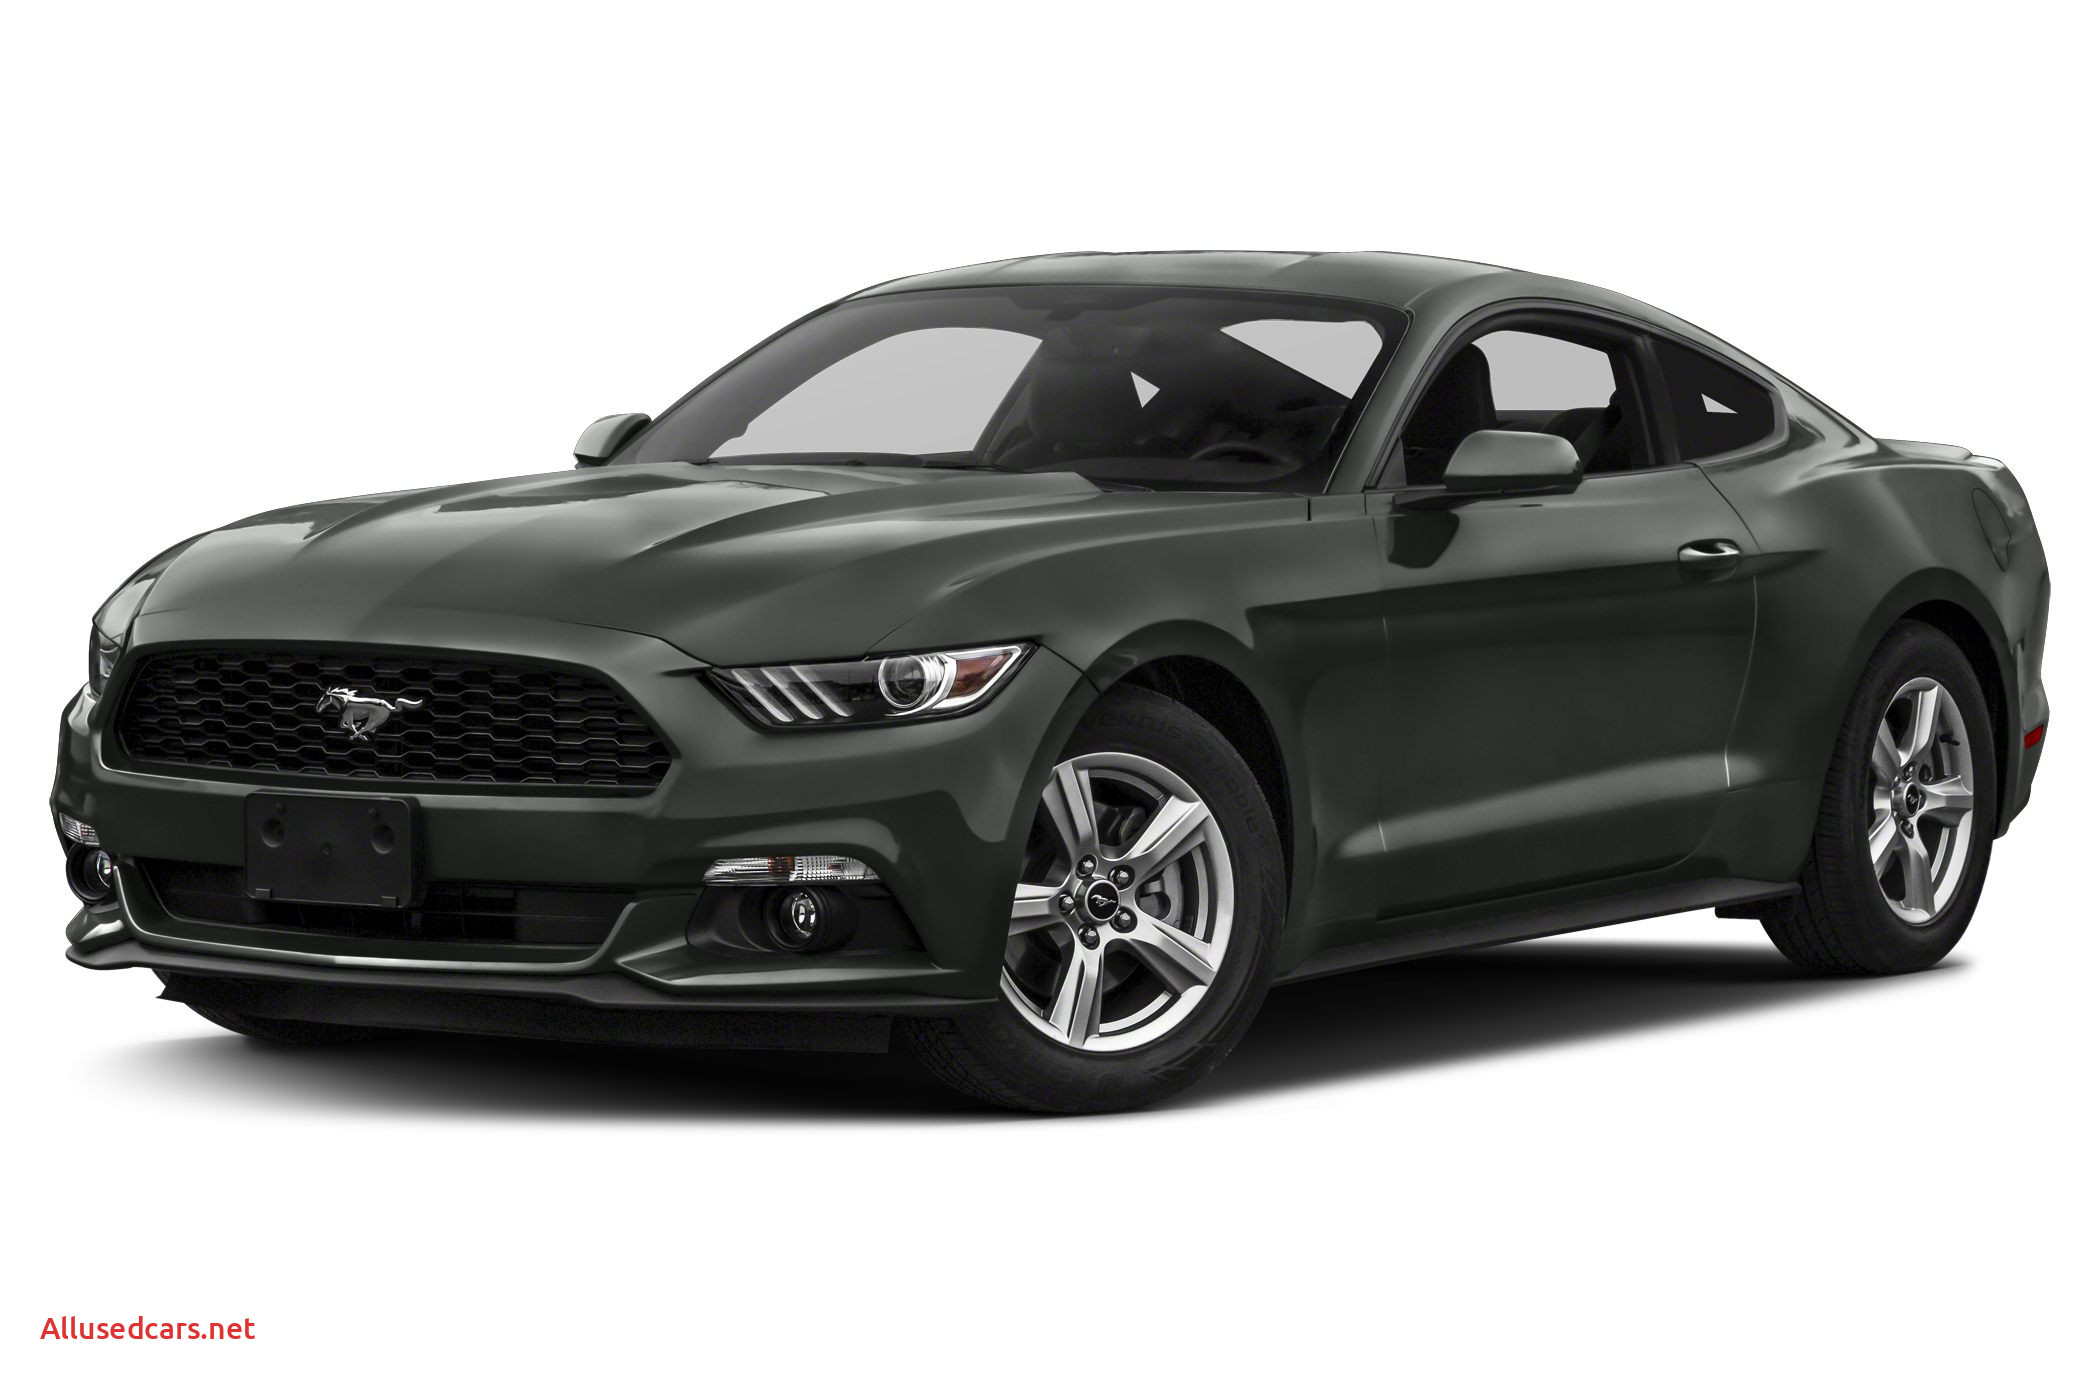 2015 ford Mustang Gt Elegant 2015 ford Mustang Safety Features